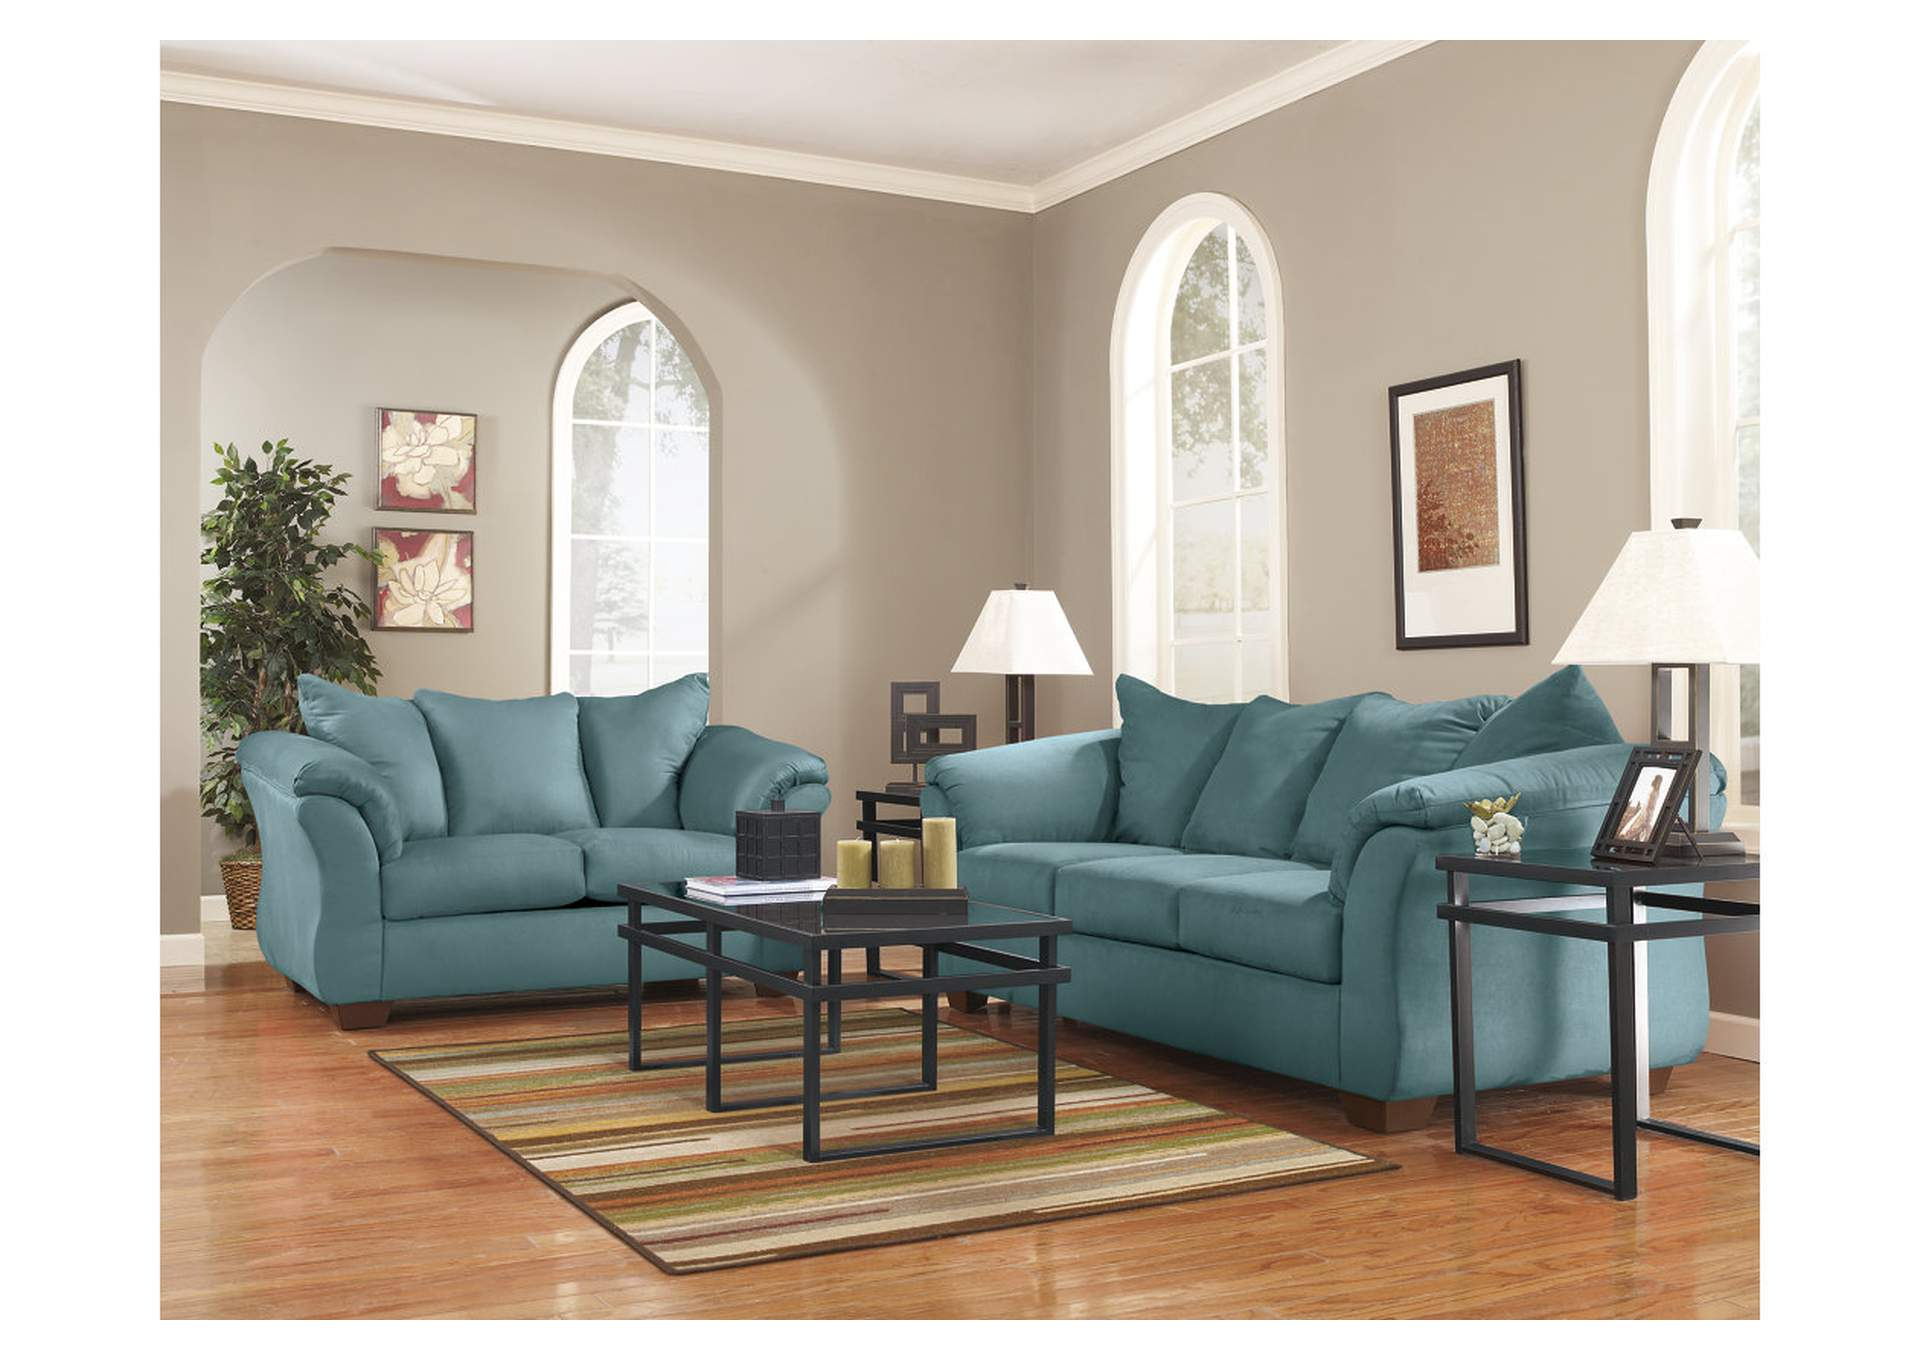 Darcy Sky Loveseat,Signature Design By Ashley